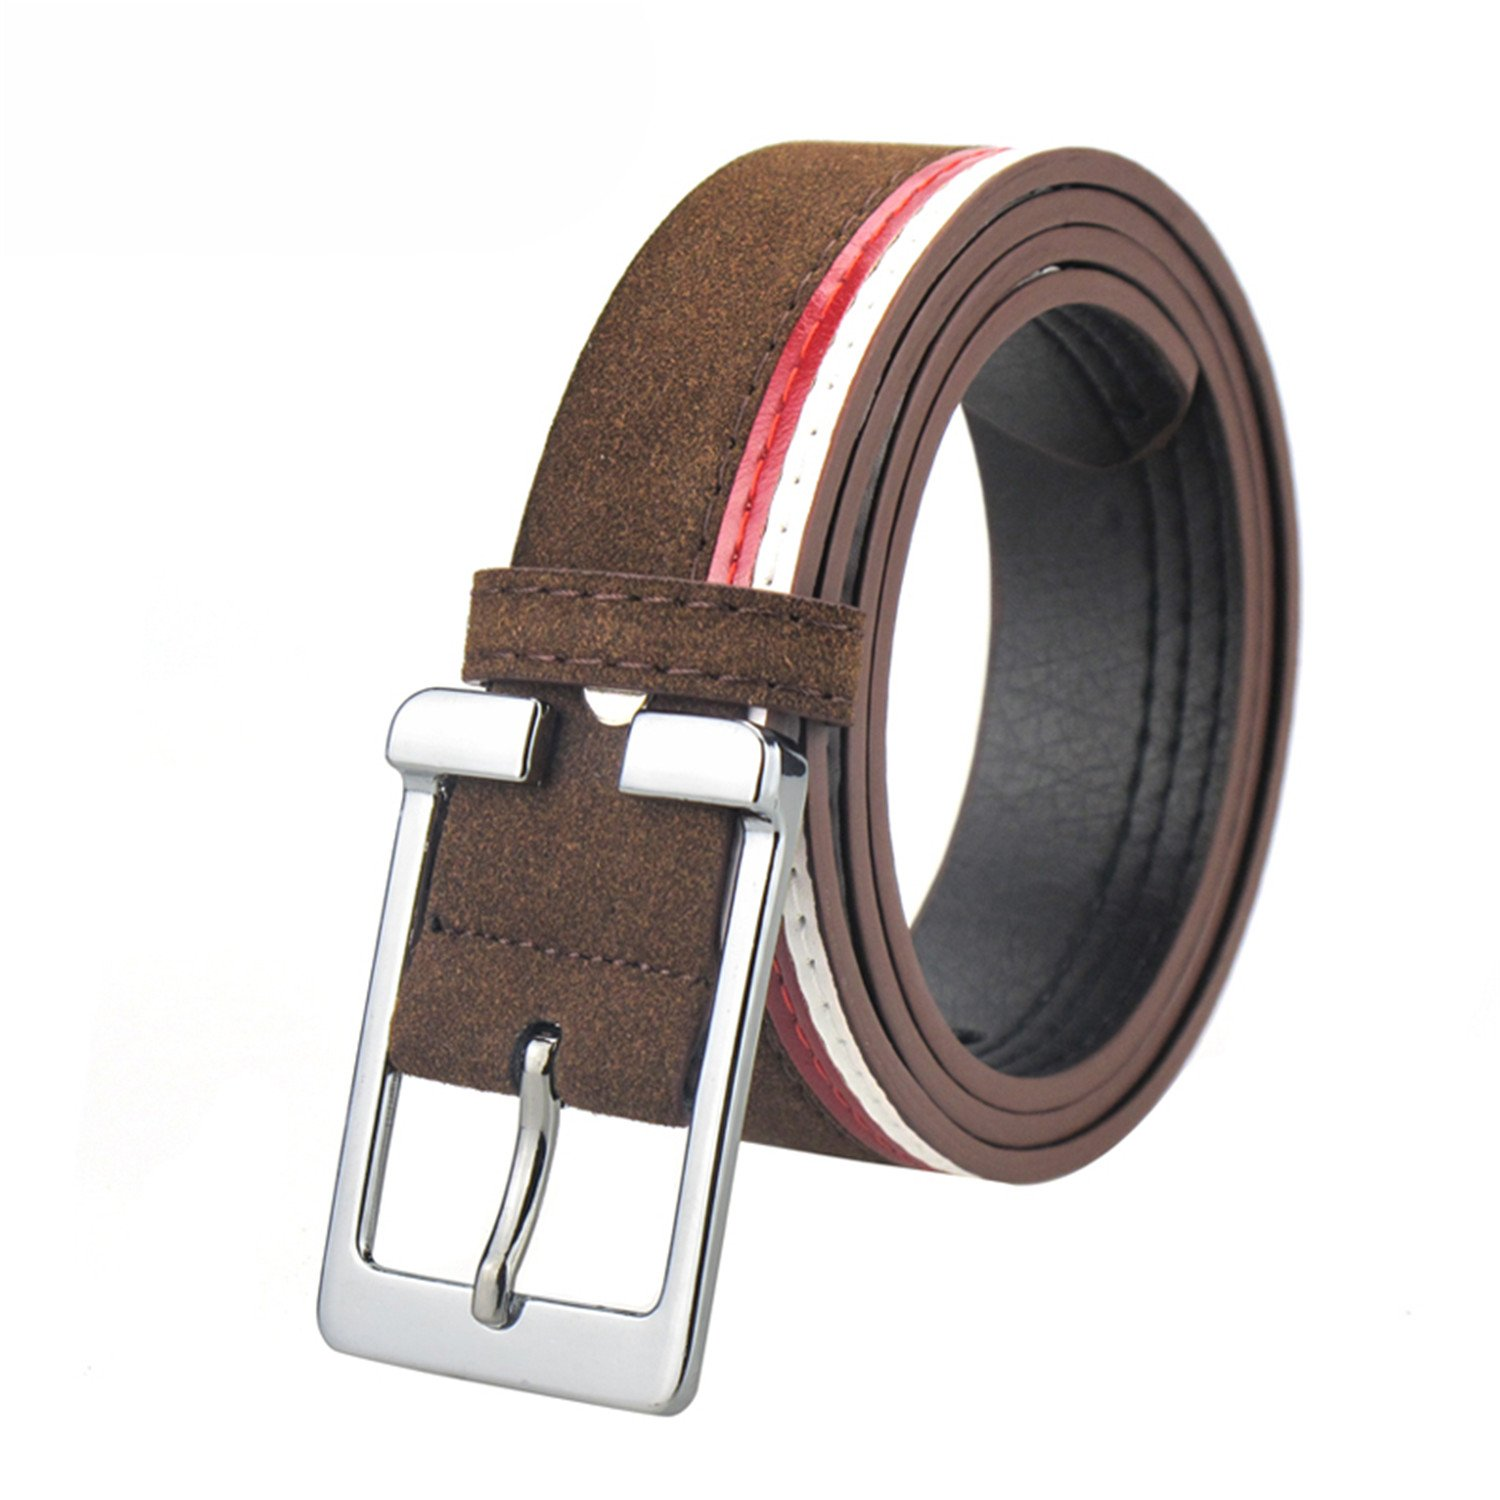 Susan1999 Luxury Suede Leather Belts For Men Belt Metal Pin Buckle Belt For Casual Jeans 4 Colors